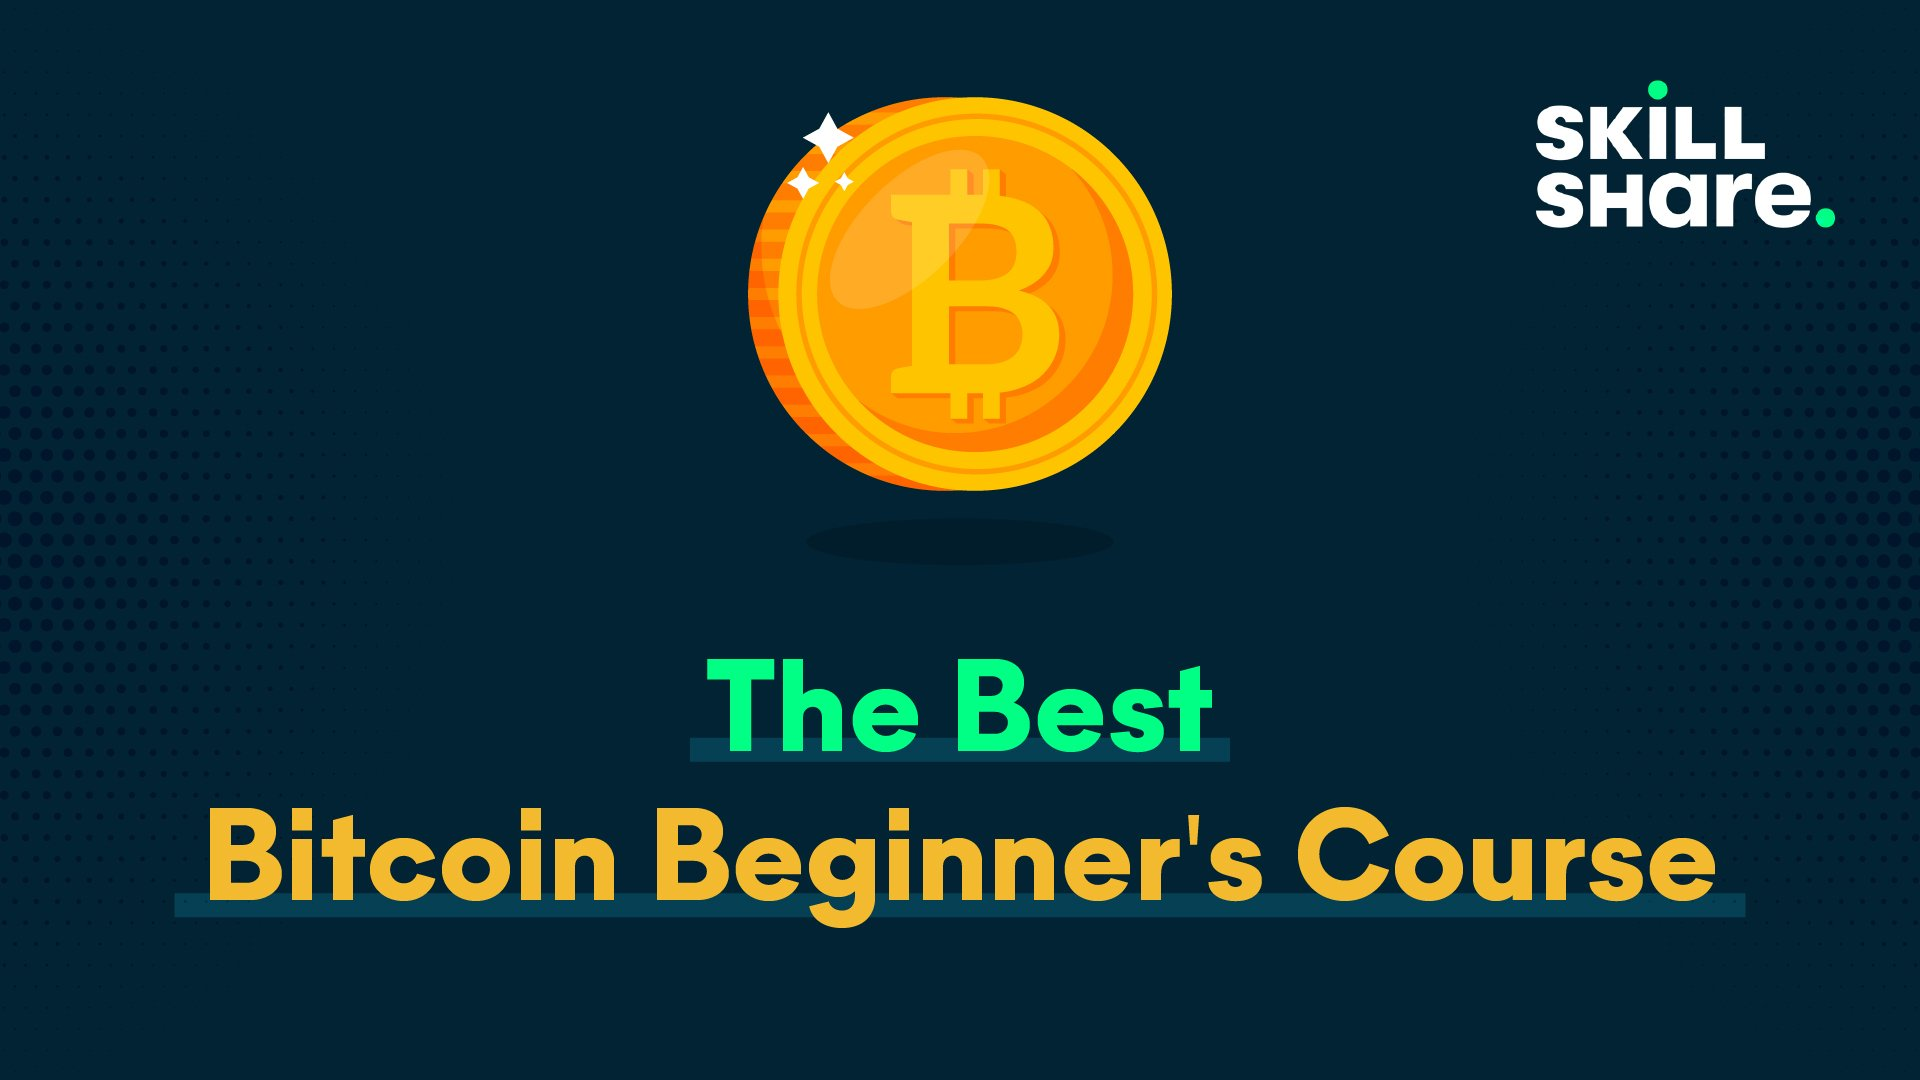 The Cryptocurrency Masterclass For Beginners